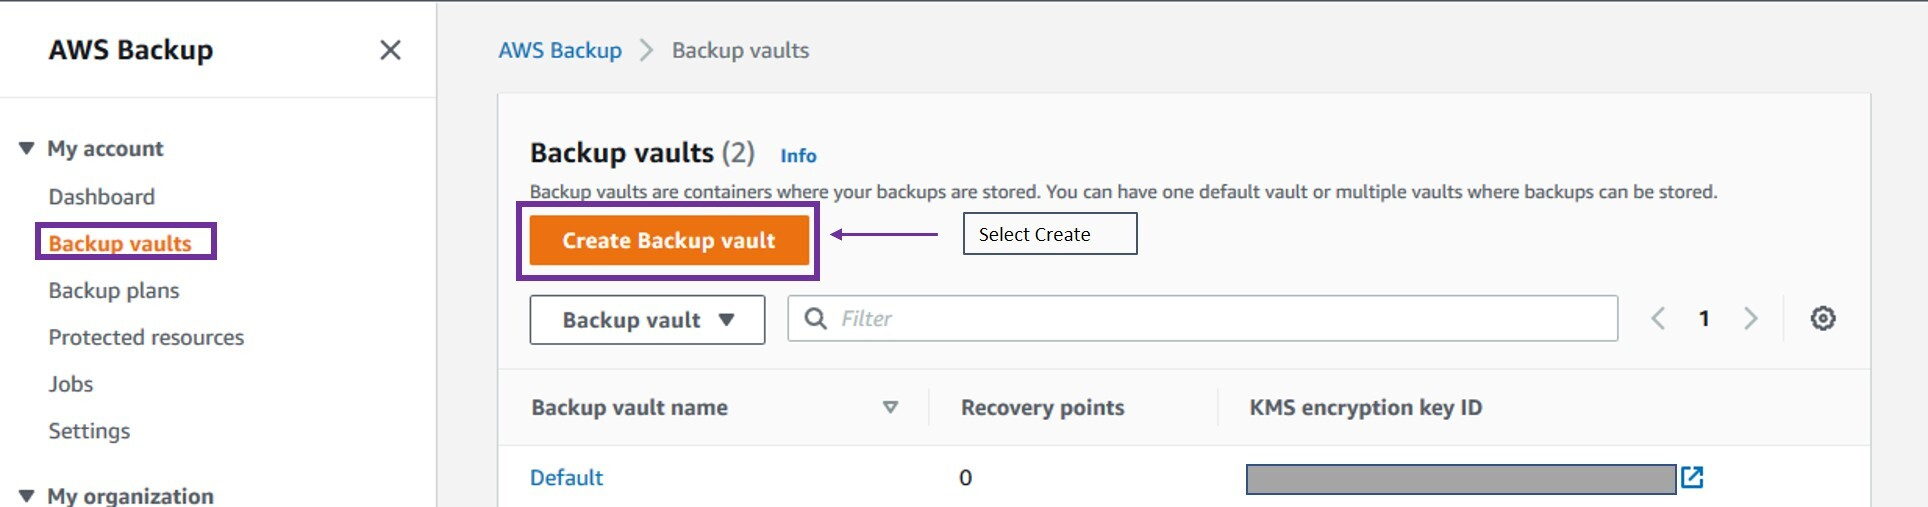 Under the My account section, select Backup Vaults. Then, select Create Backup vault